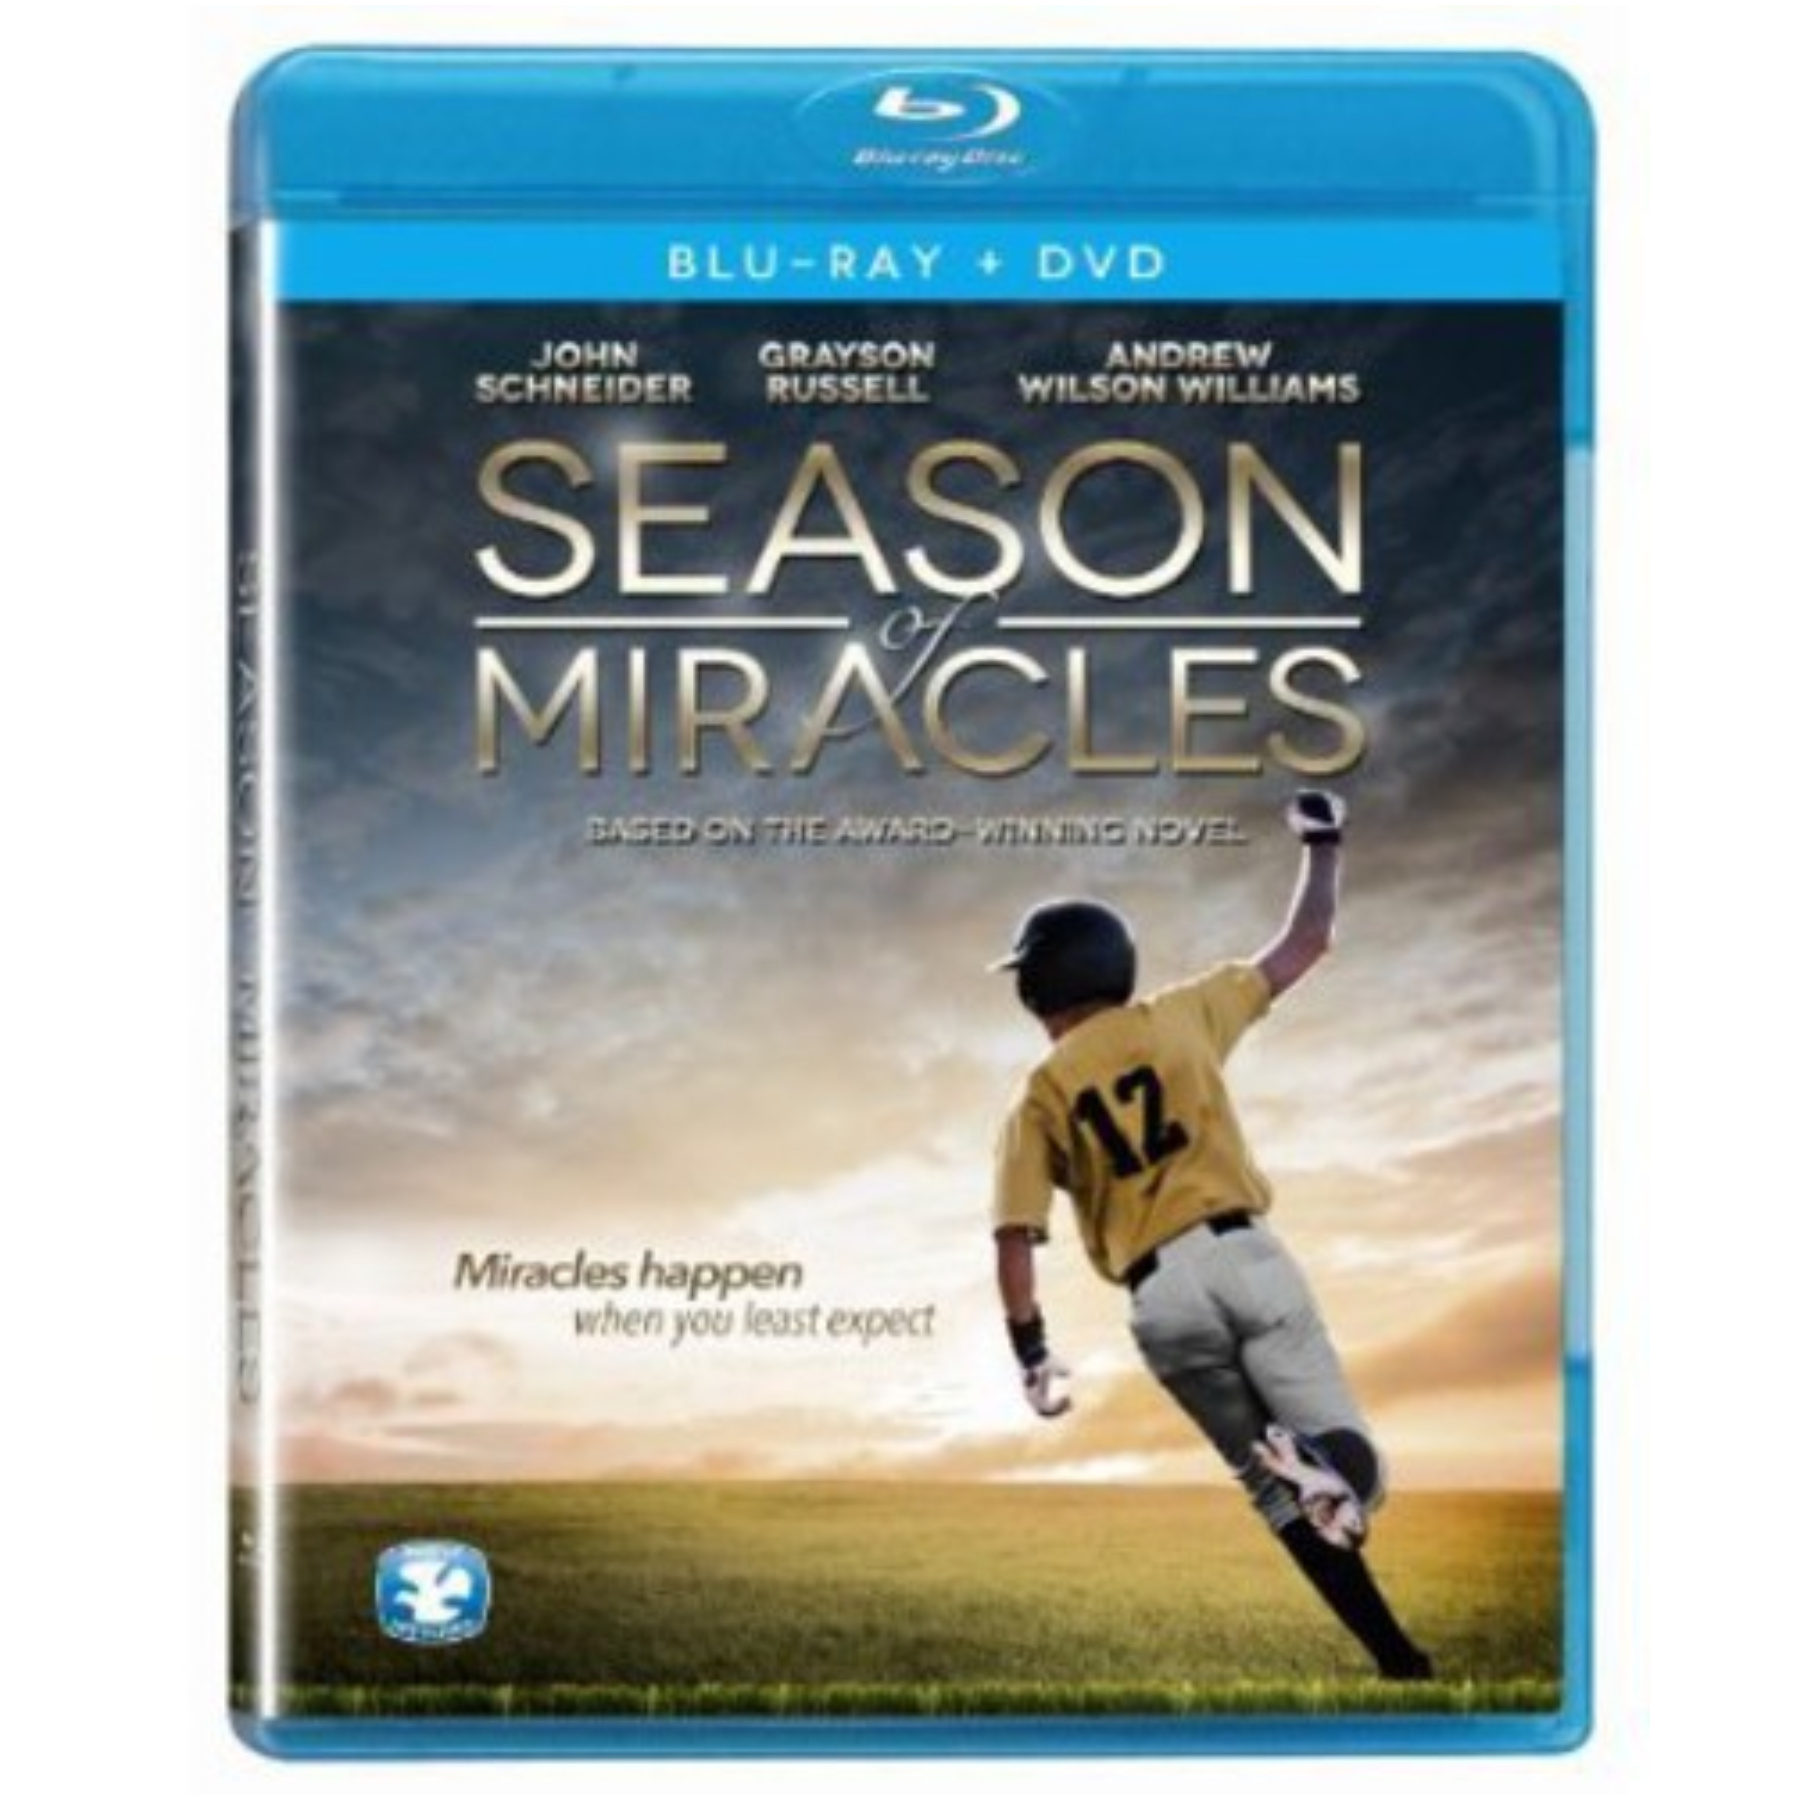 Season Of Miracles: Season Of Miracles Blu-Ray 09368170220